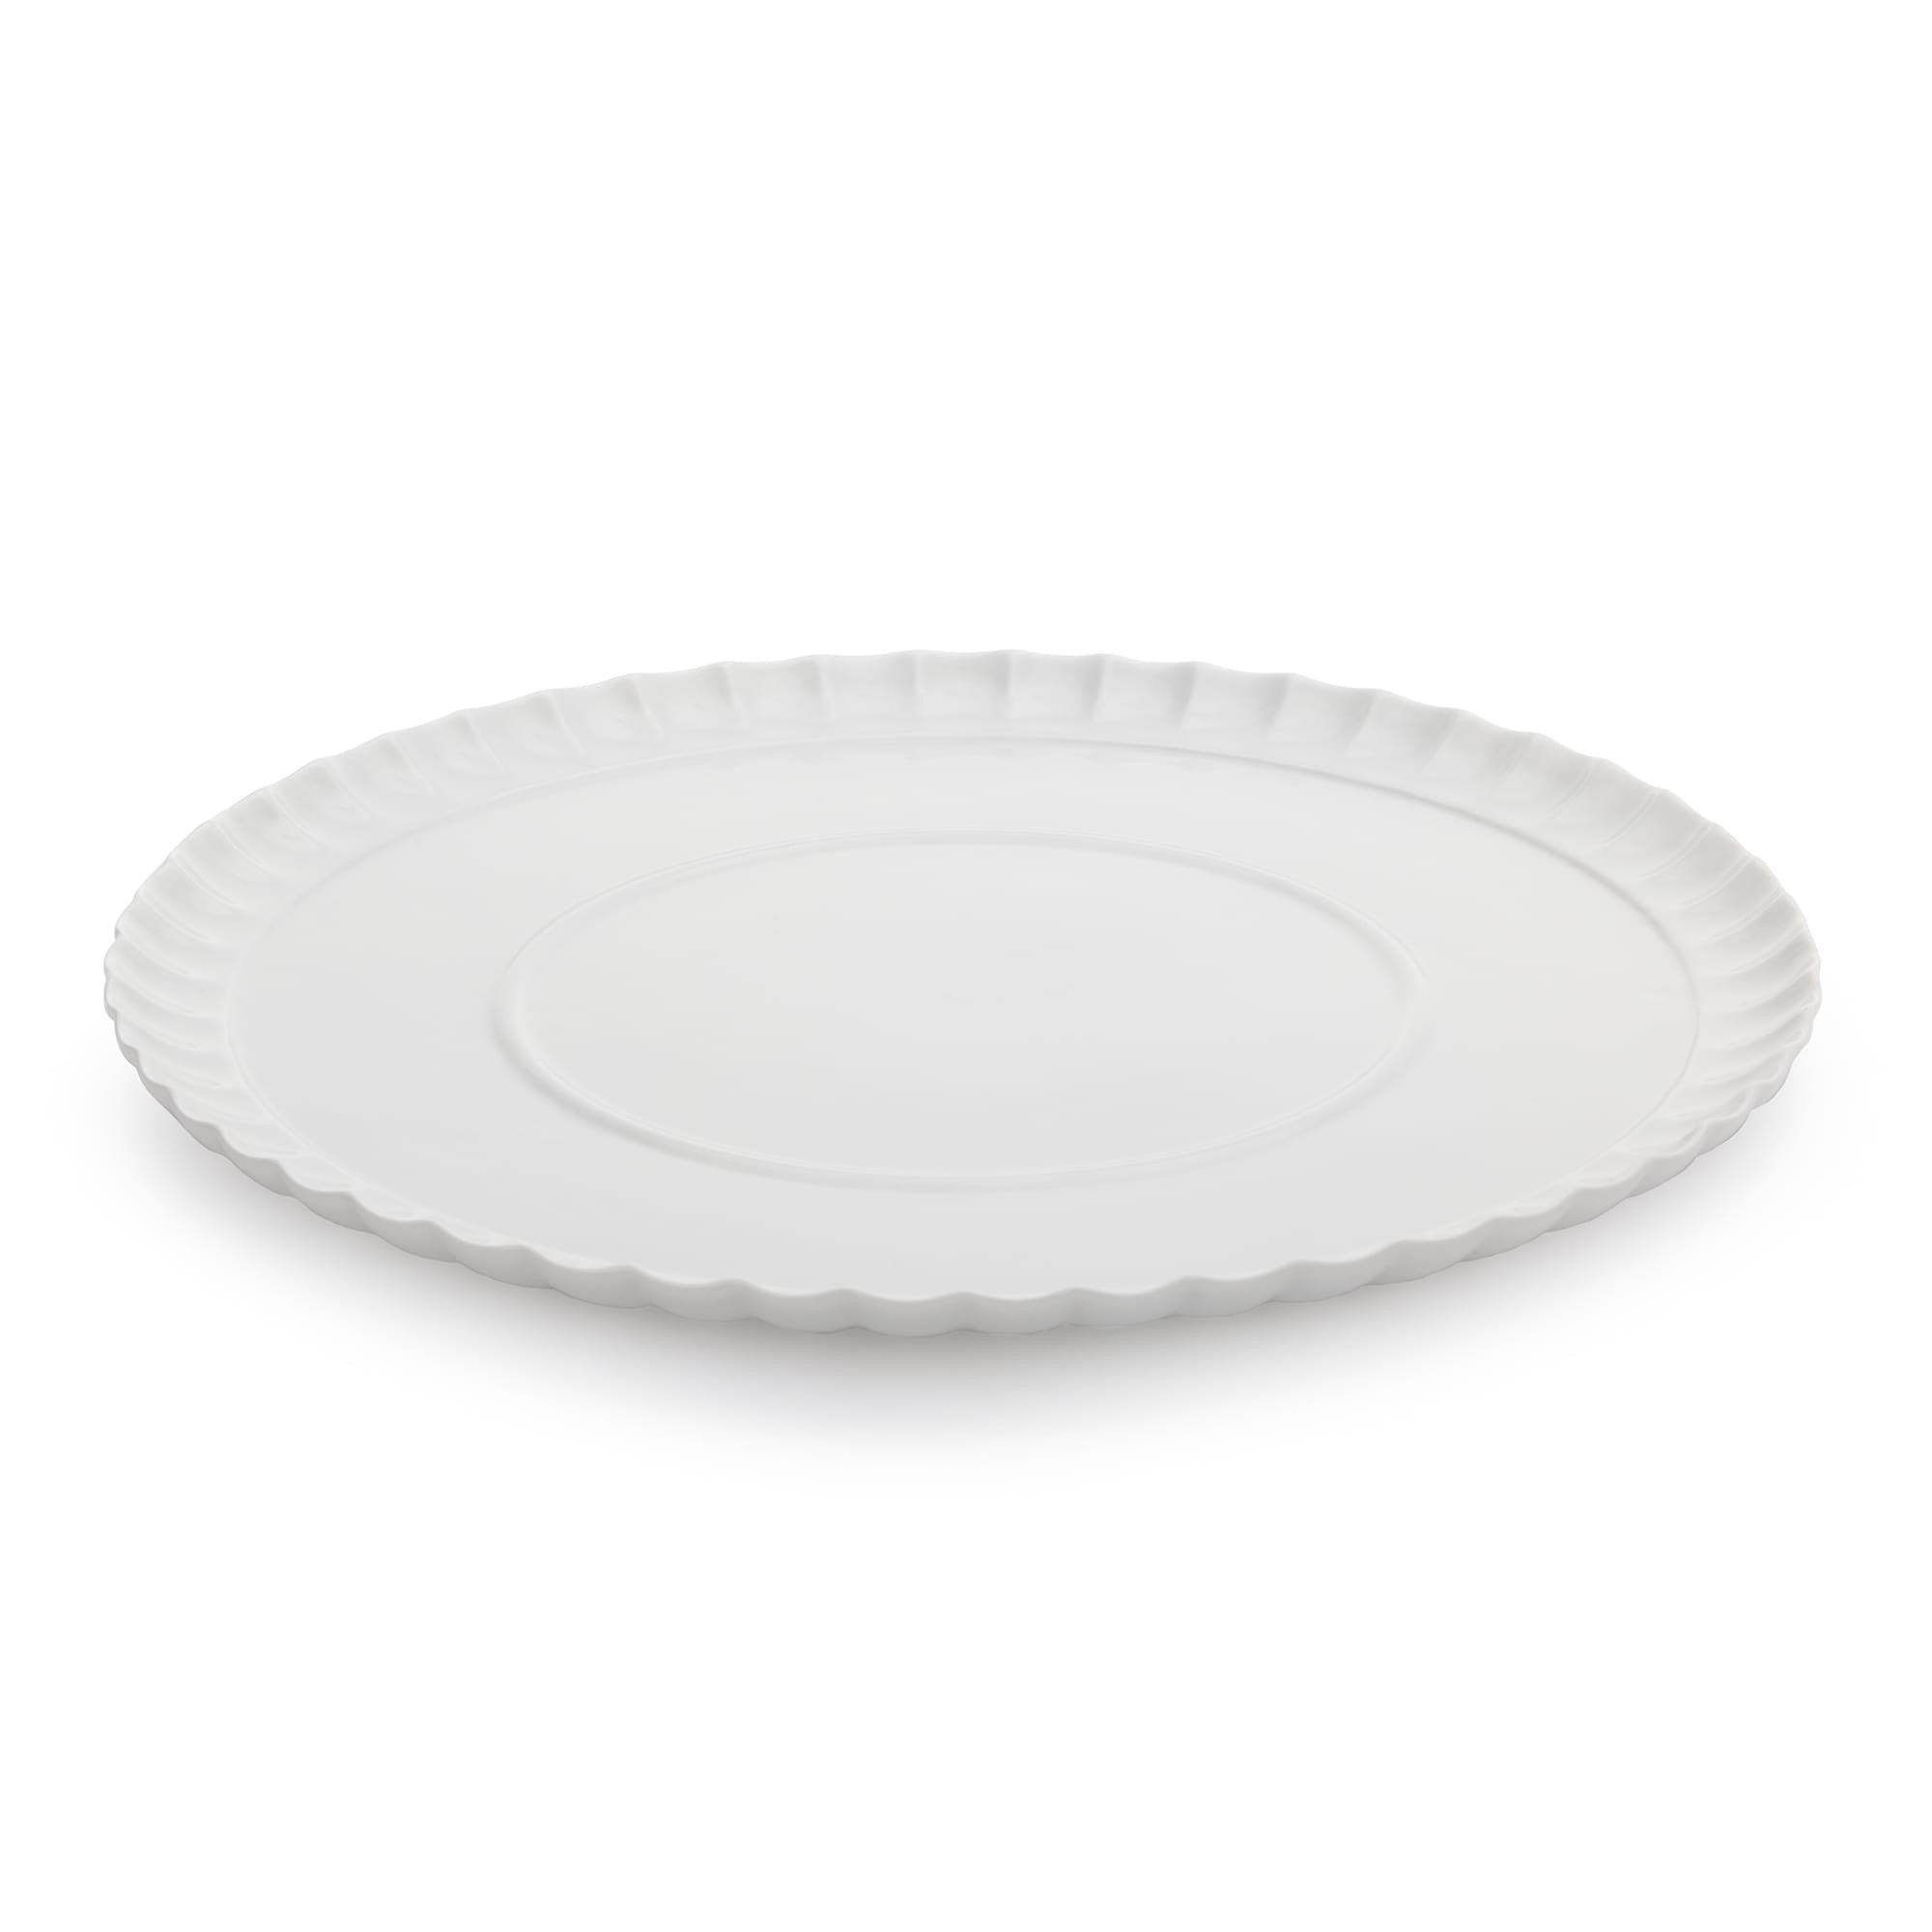 Estetico Quotidiano The Large Ripple Tray design by Seletti